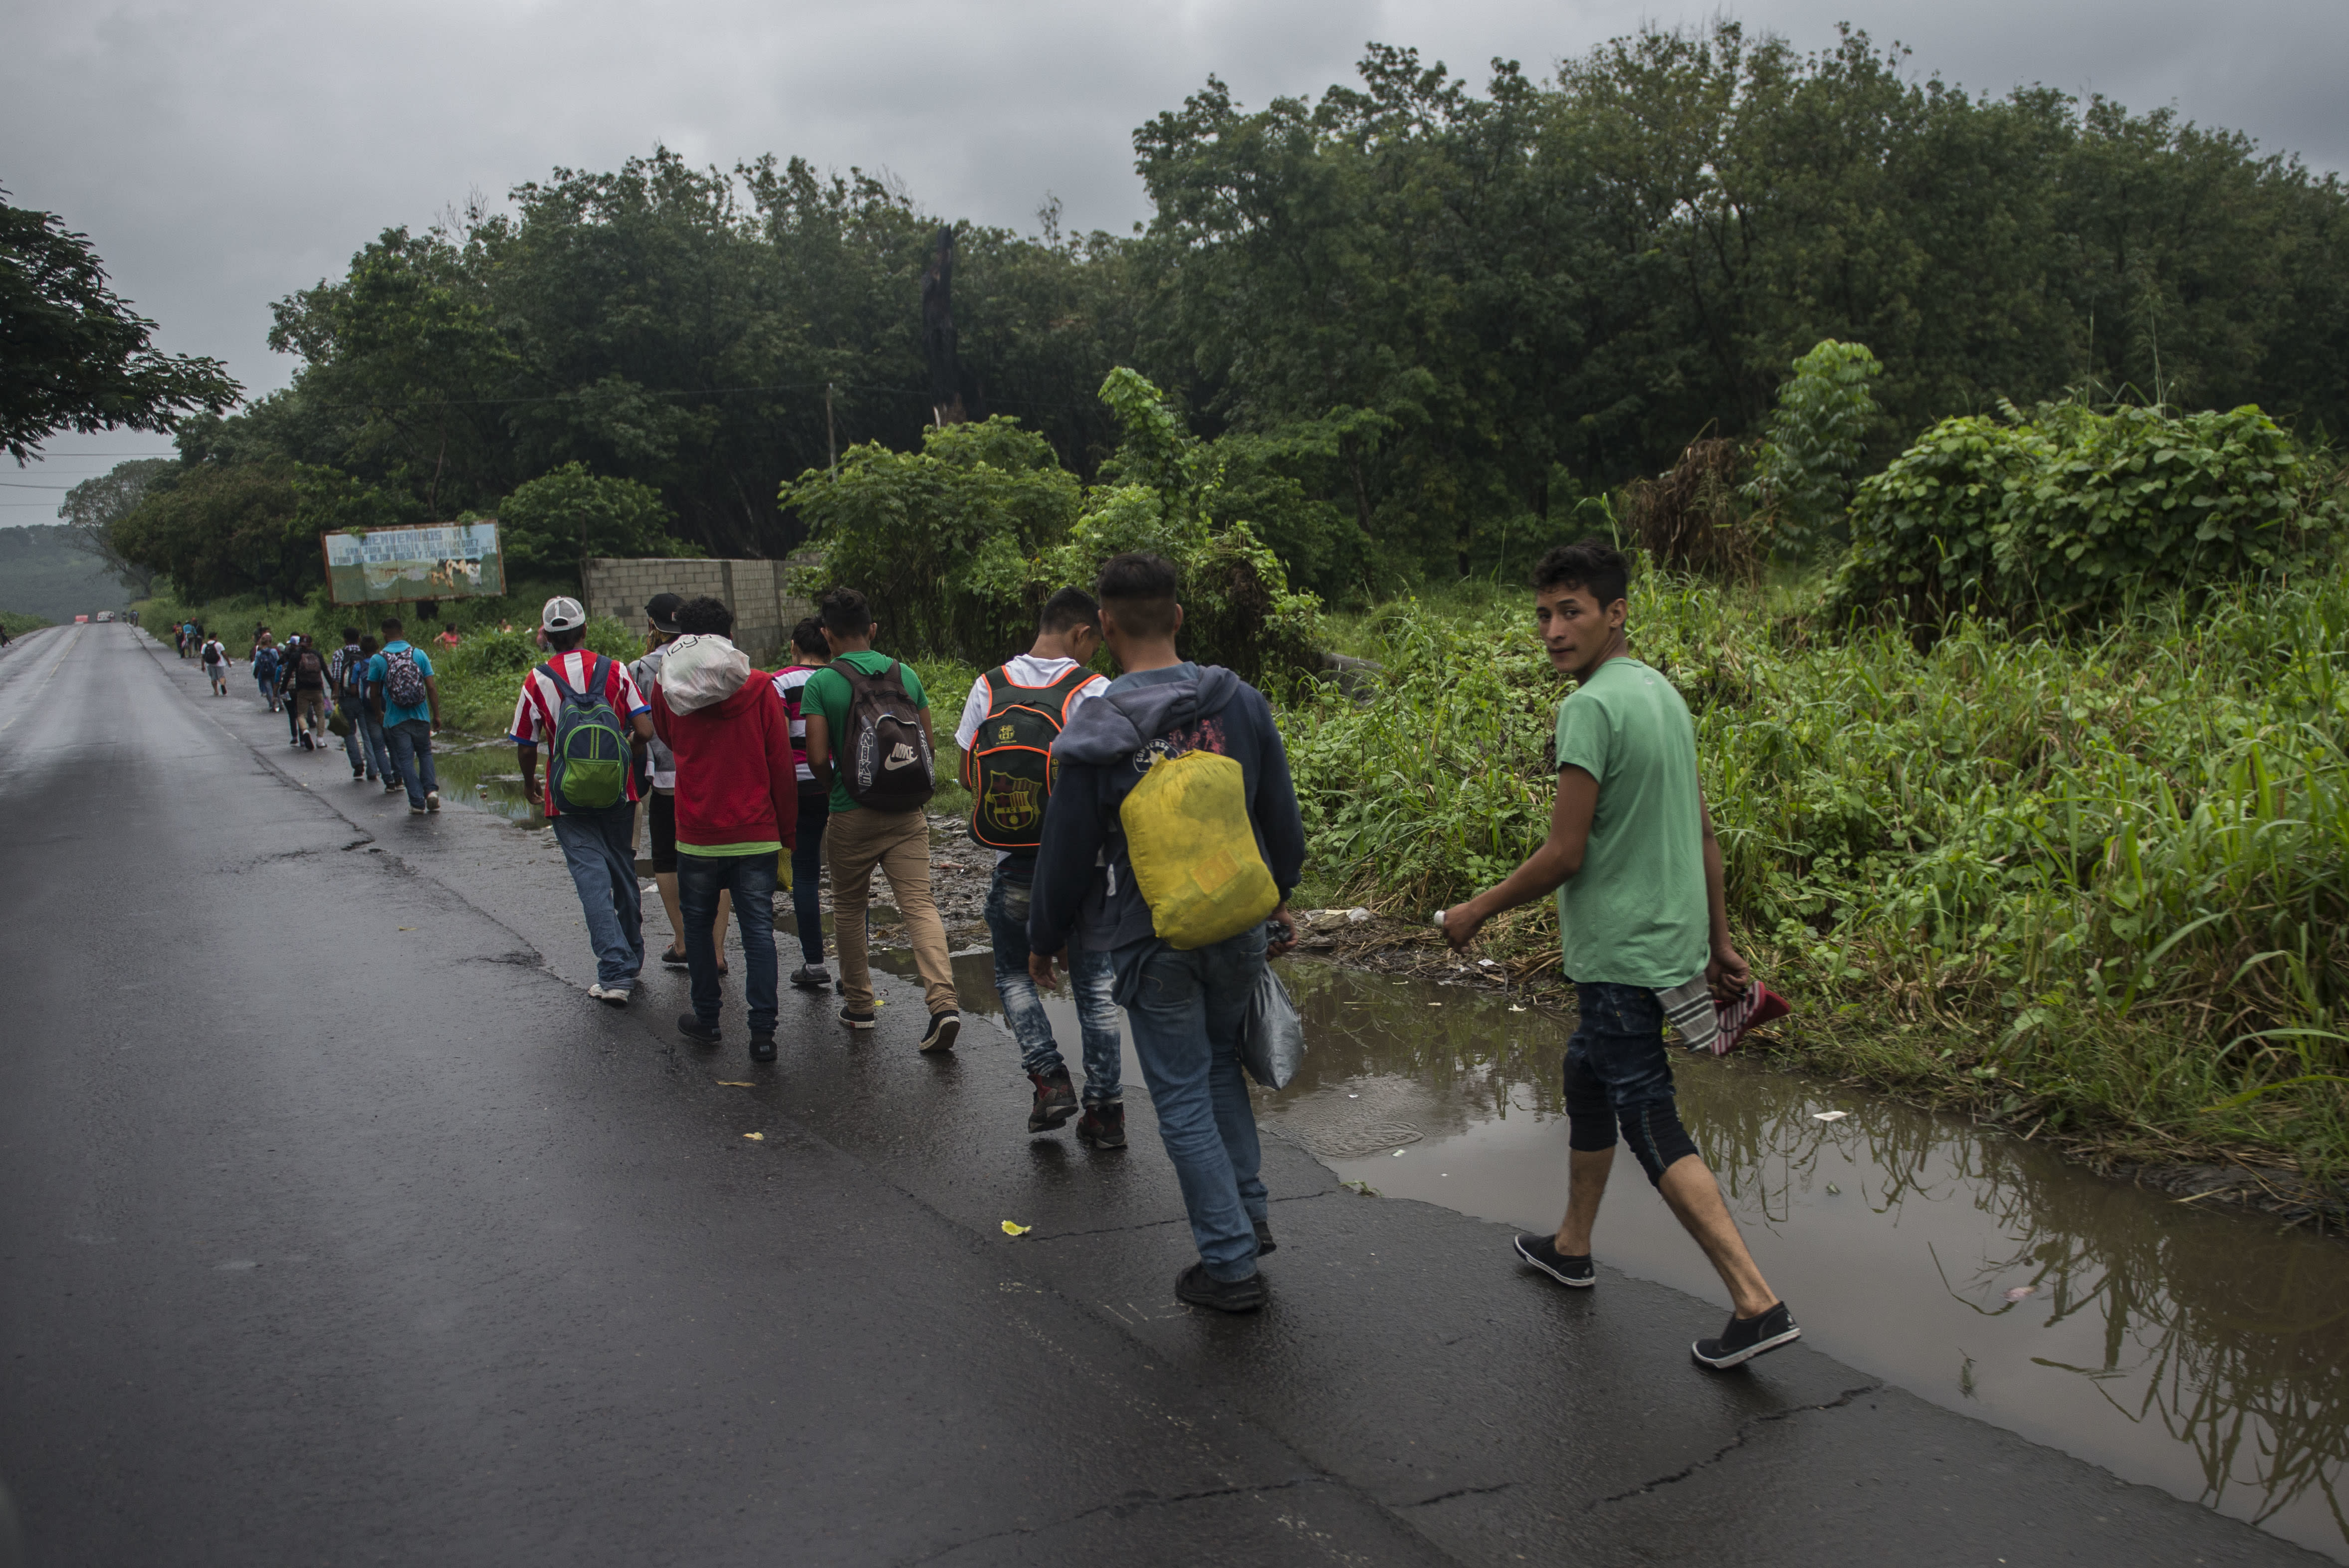 Honduran migrants are seen walking along a highway in Cocales, Gautemala, on their way to the U.S. border, Thursday, Oct. 18, 2018. Many of the more than 2,000 Hondurans in a migrant caravan trying to wend its way to the United States left spontaneously with little more than the clothes on their backs and what they could quickly throw into backpacks. (AP Photo/Oliver de Ros)'